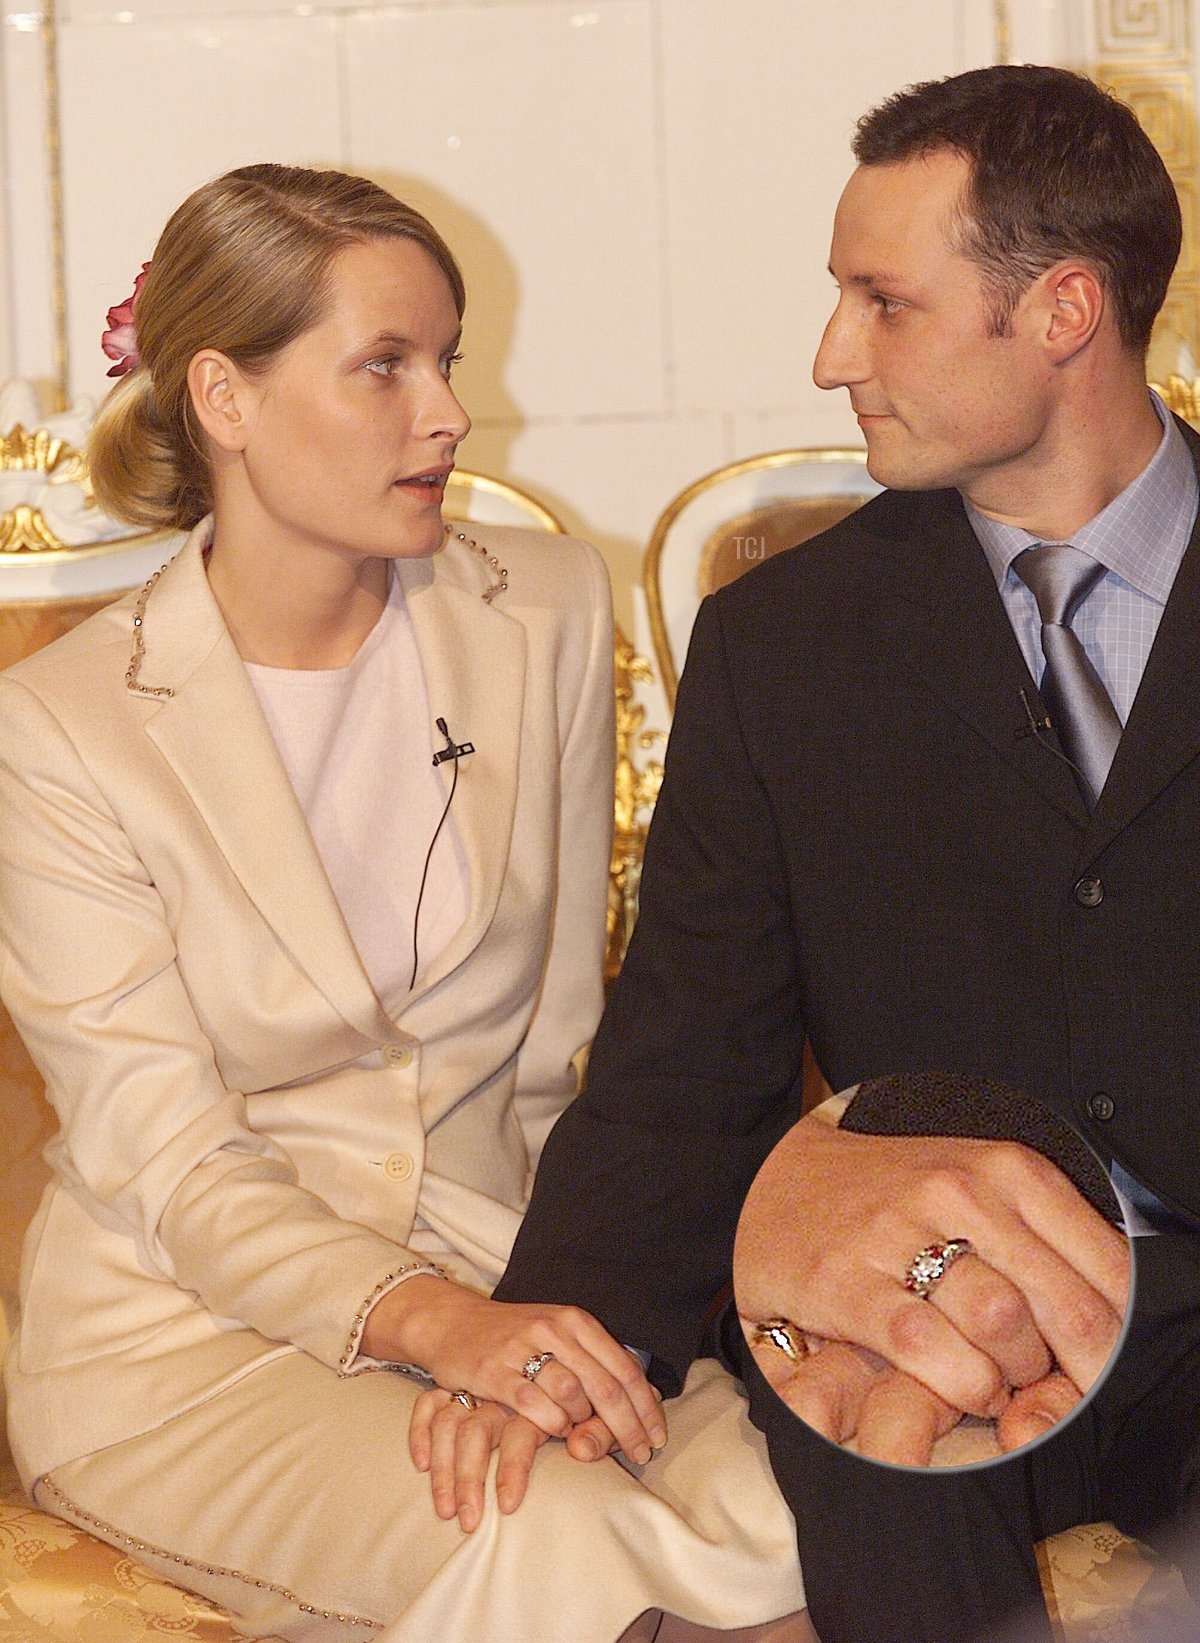 Mette-Marit Tjessem and HRH Crown Prince Haakon Magnus hold hands January 21, 2000 after announcing their engagement in Oslo, Norway